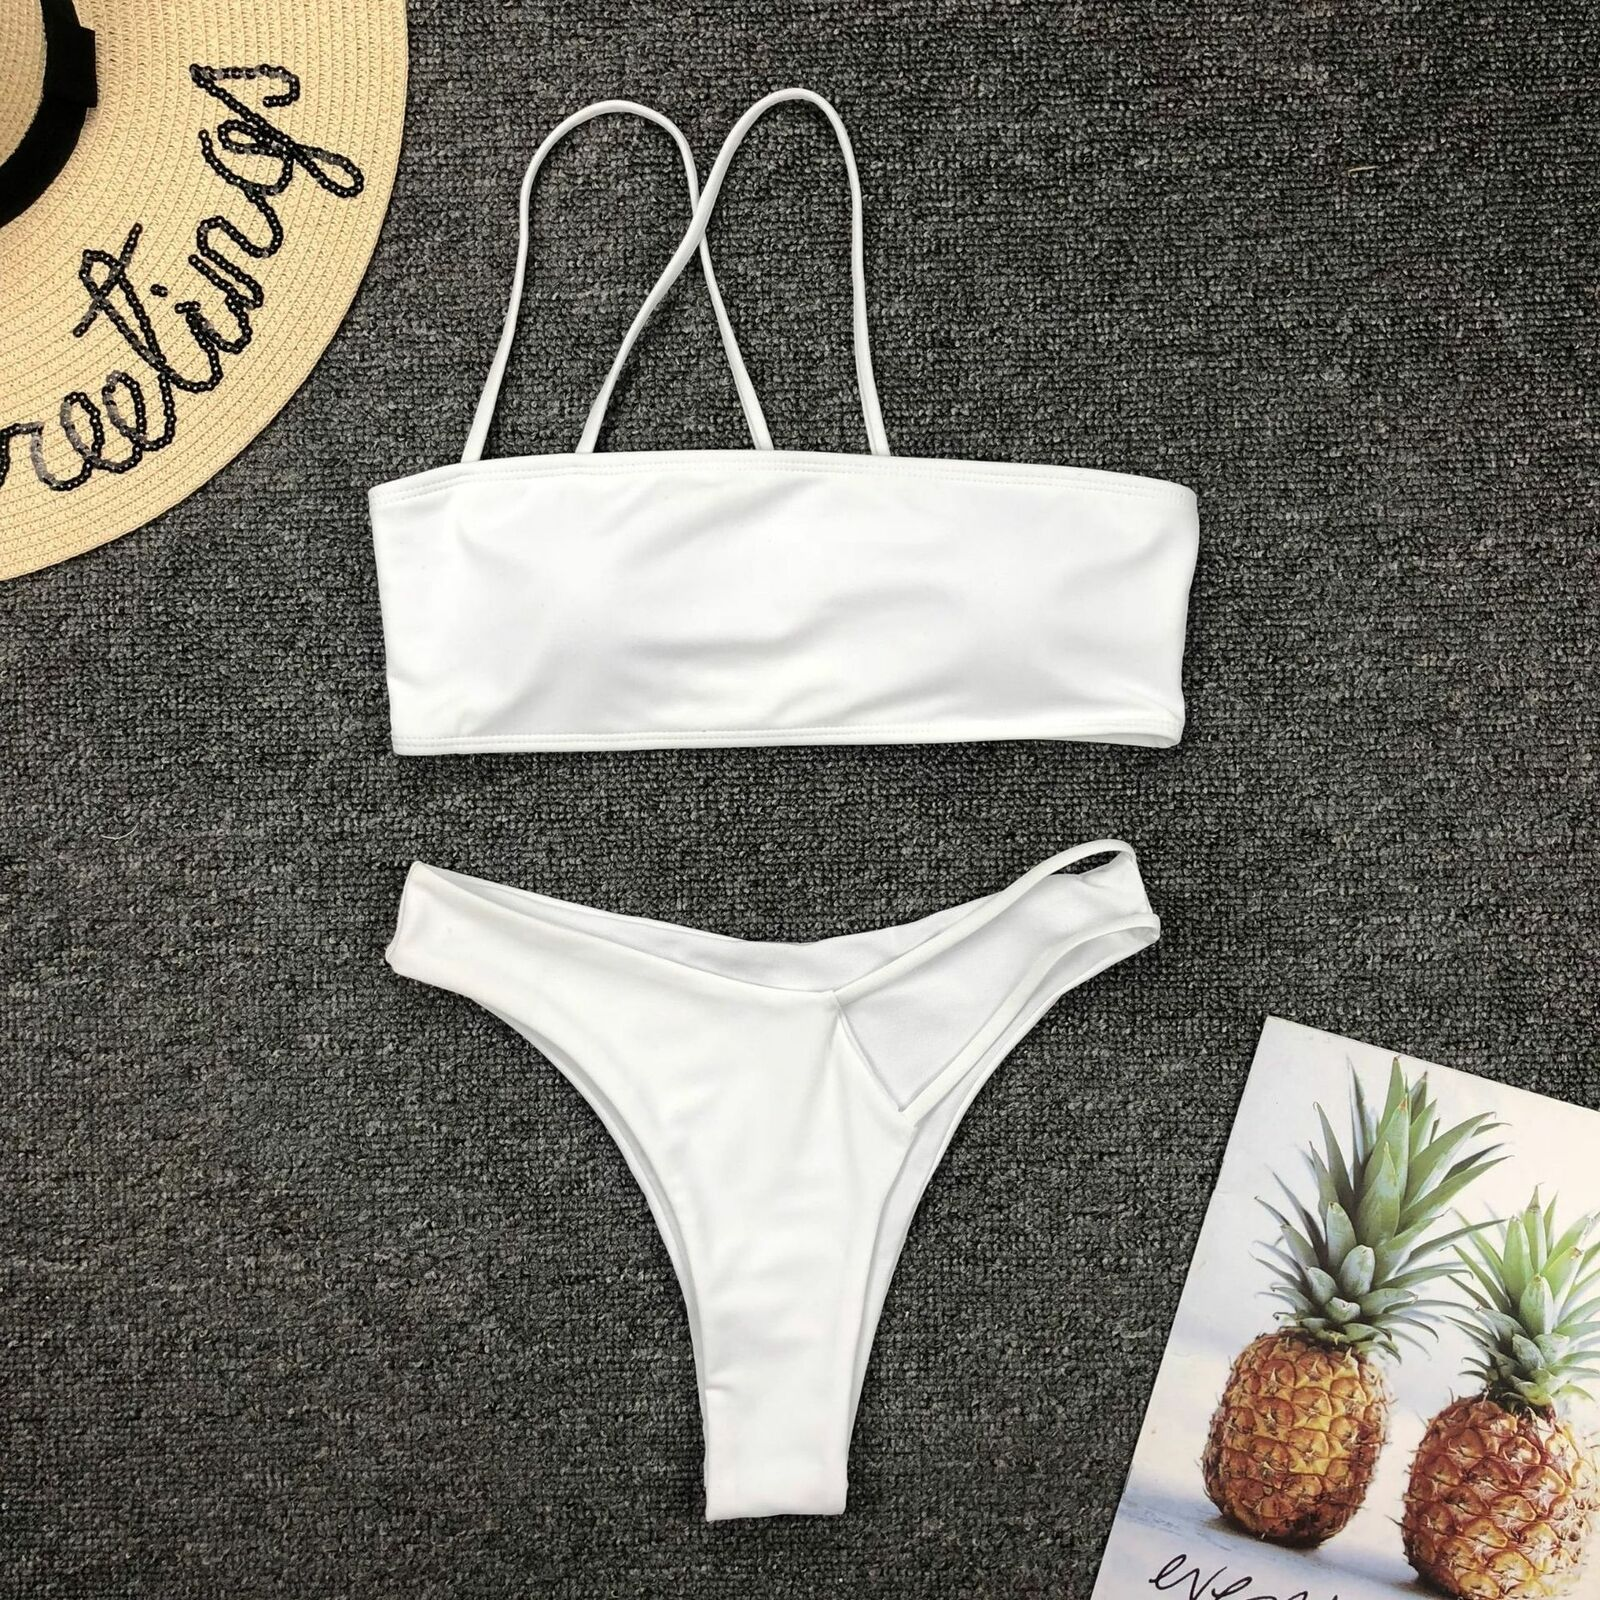 The Best Women's Sexy Summer Beach Bikini Set Ladies 2pcs Holiday Push Up Bikini Set Bra Padded Swimwear Pool Swimsuit Beachwear Online - Source Silk